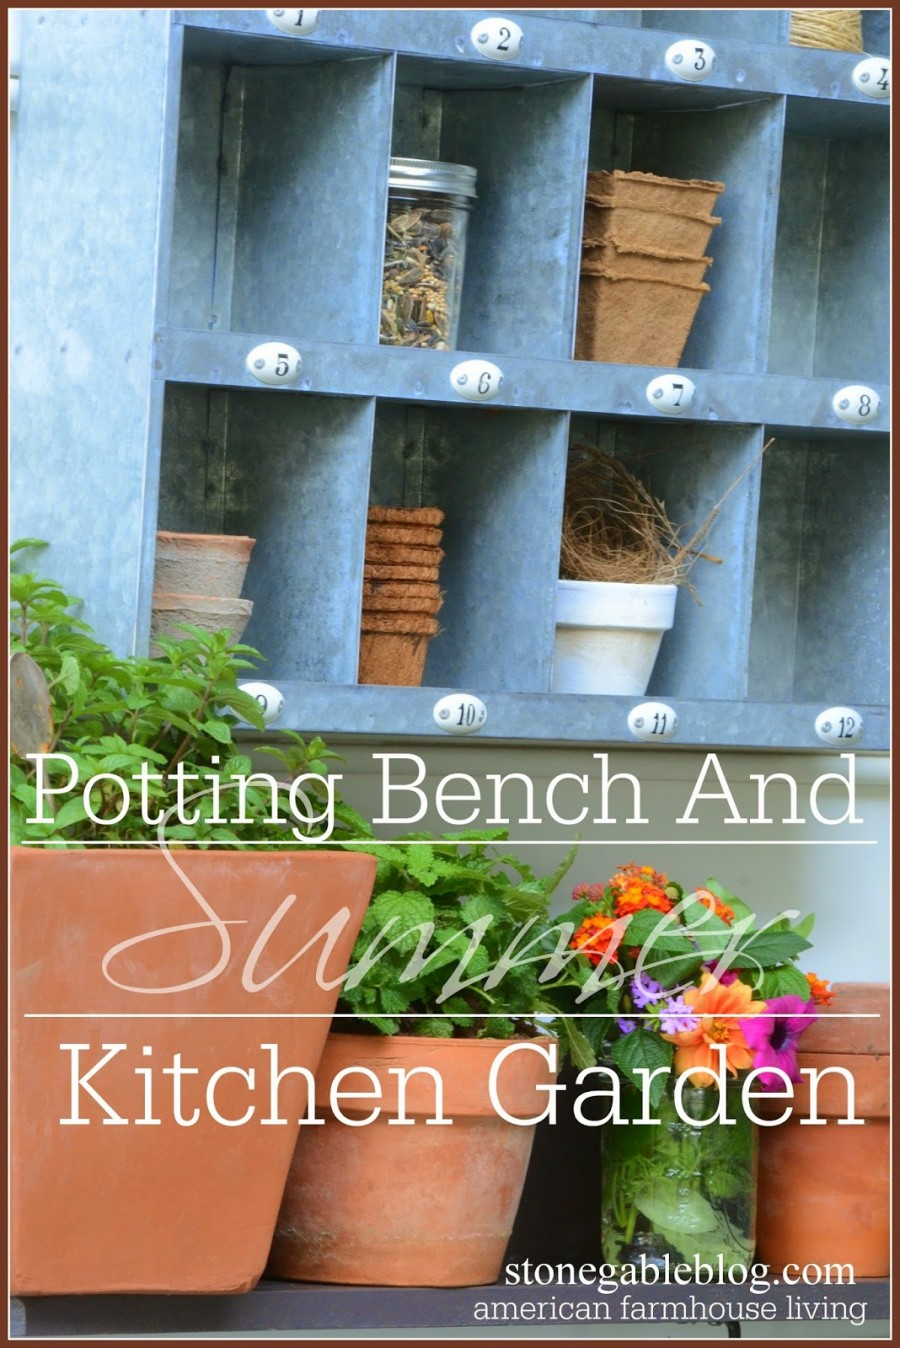 SUMMER POTTING BENCH AND KITCHEN GARDEN